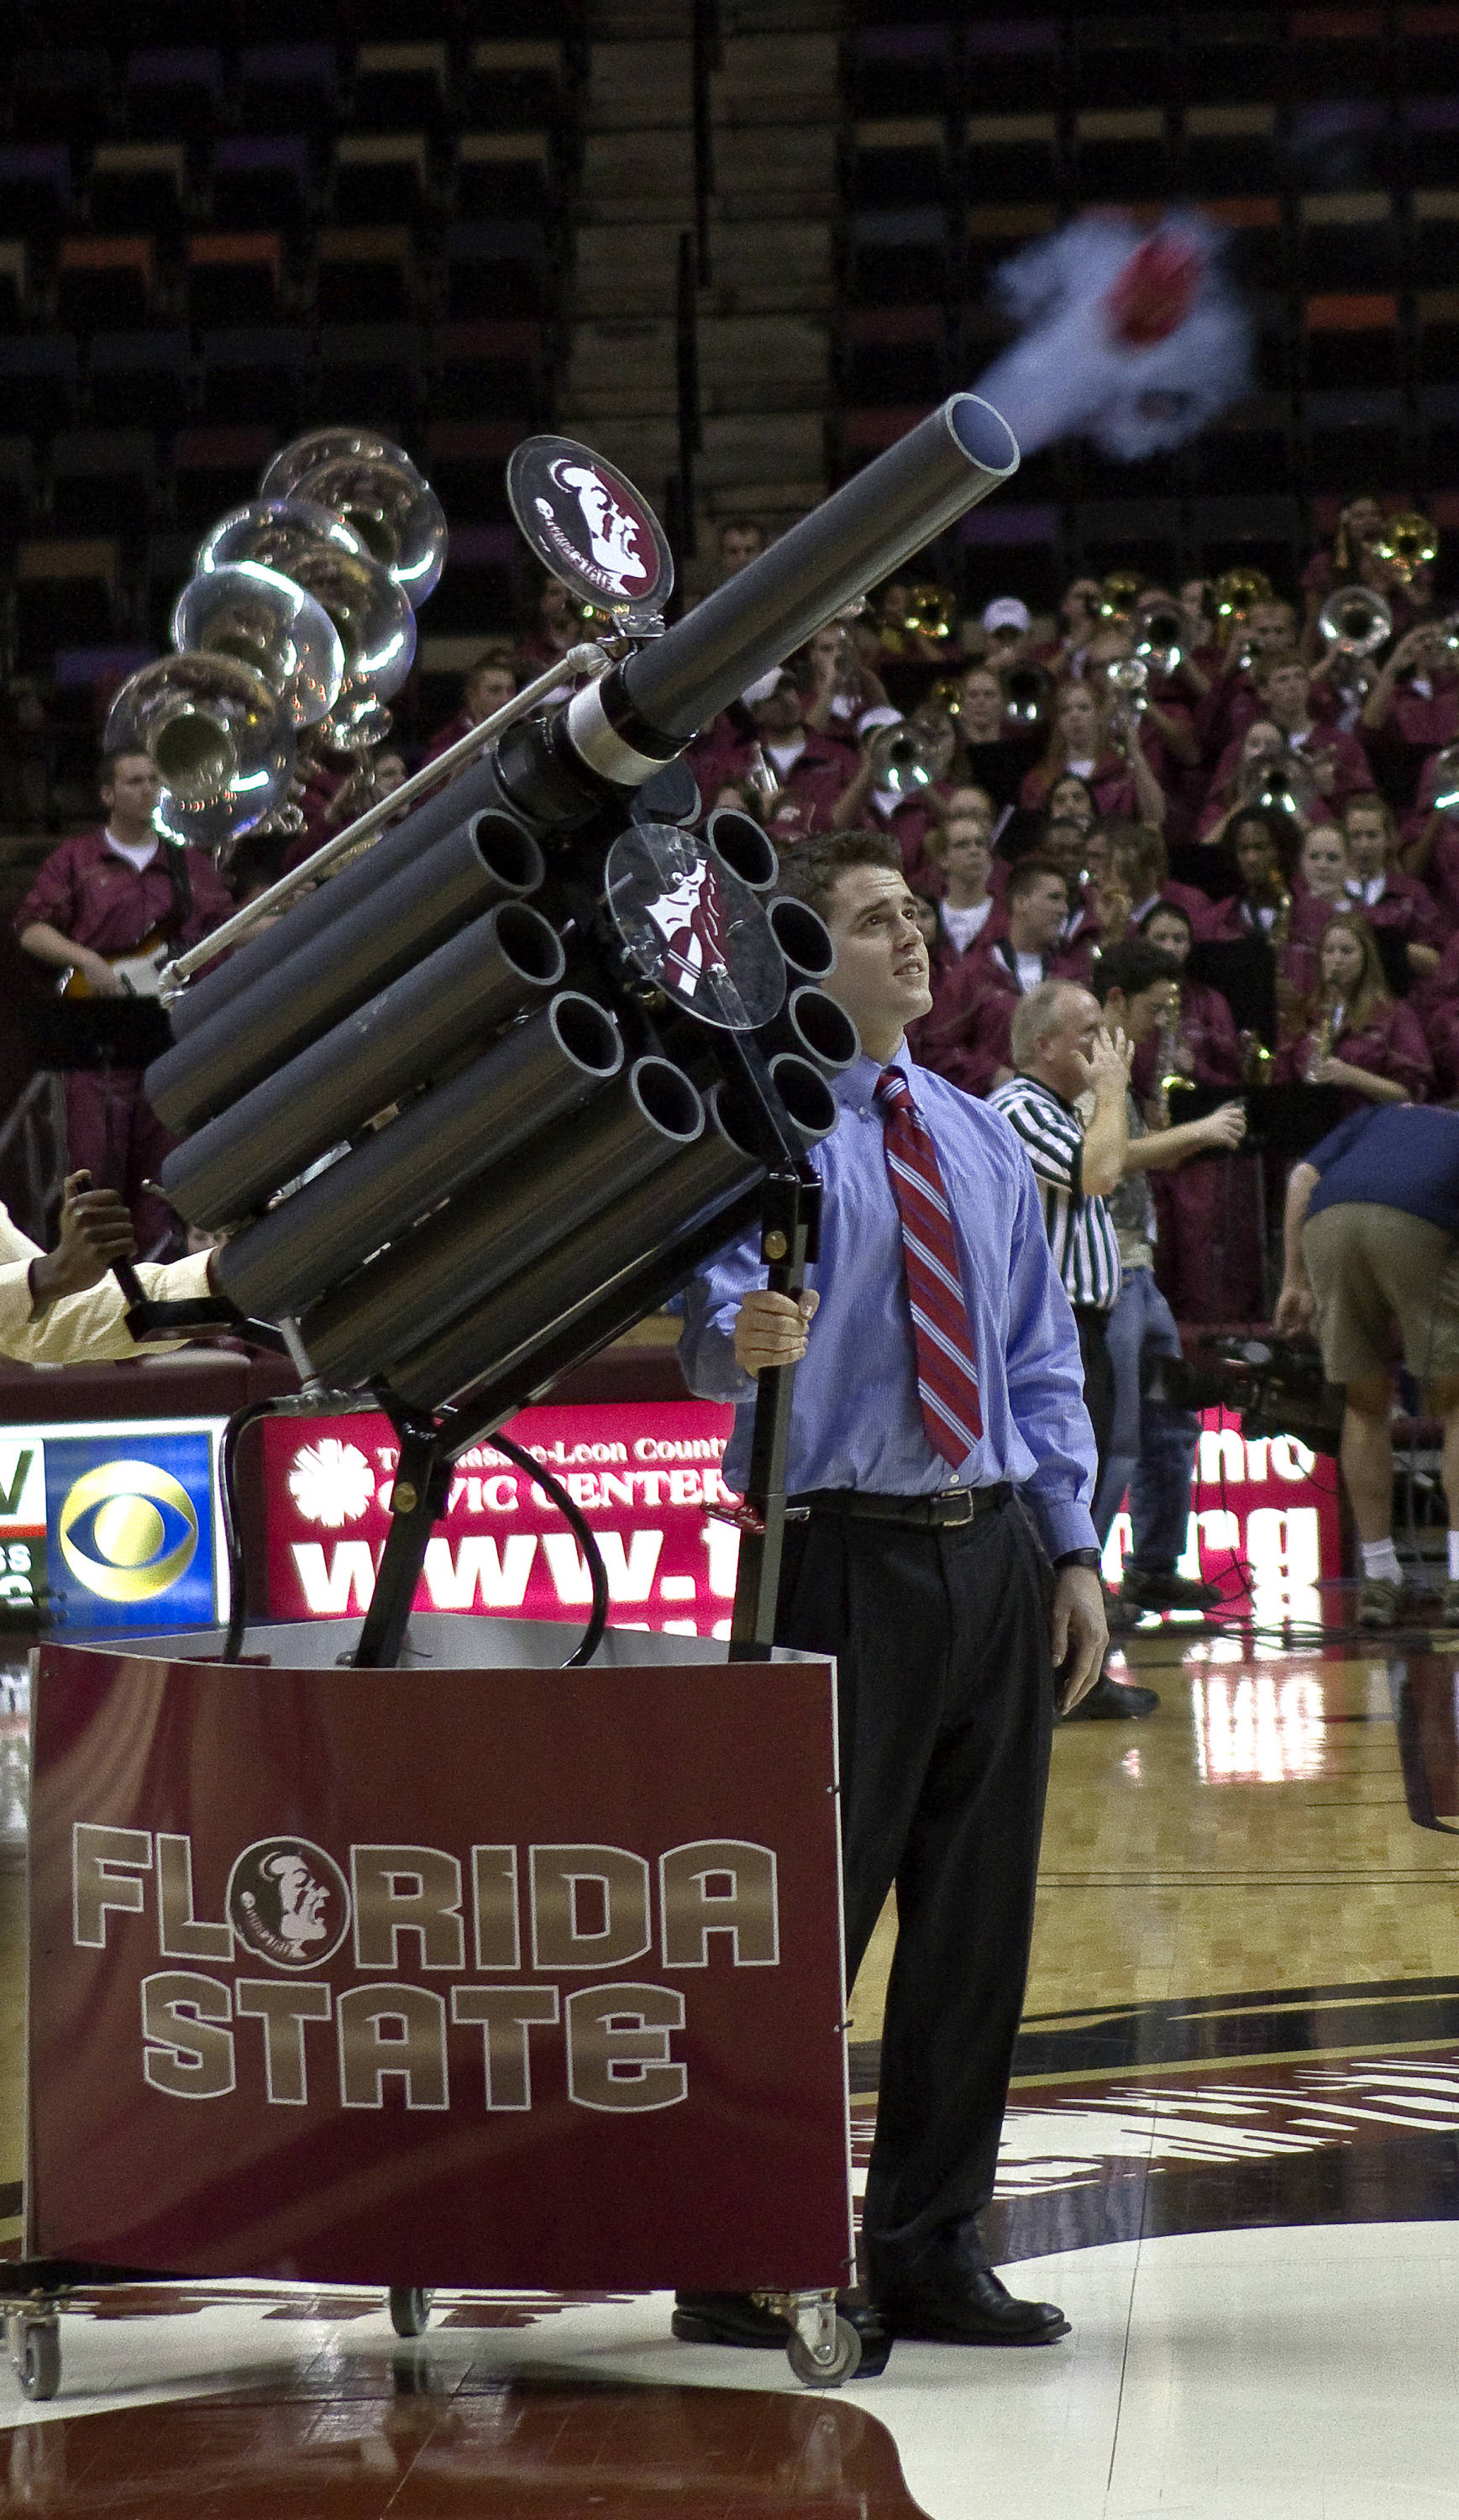 FSU vs Miami - 01/24/11 - FSU T-shirt cannon